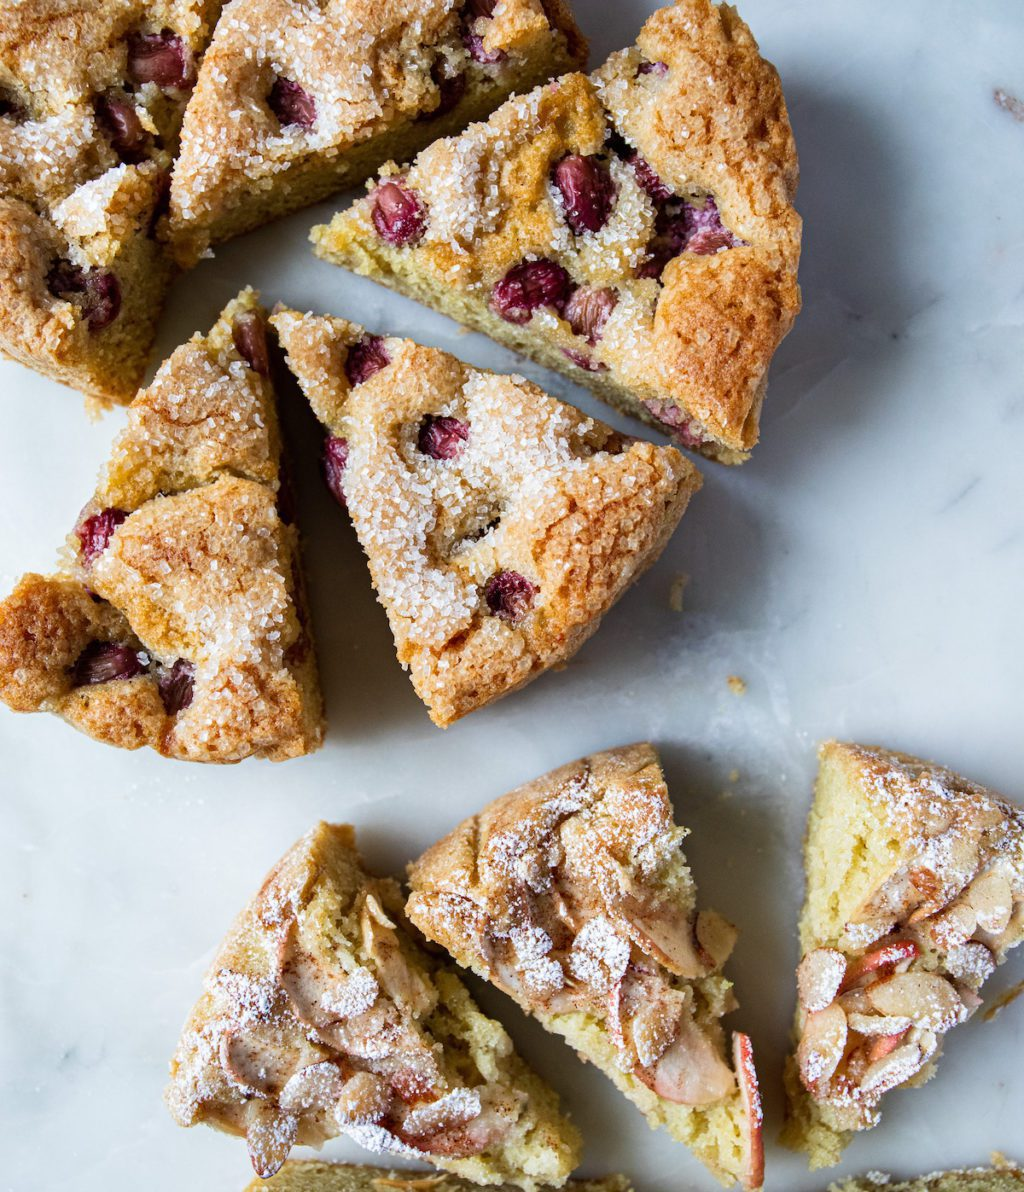 slices of grape and apple cake